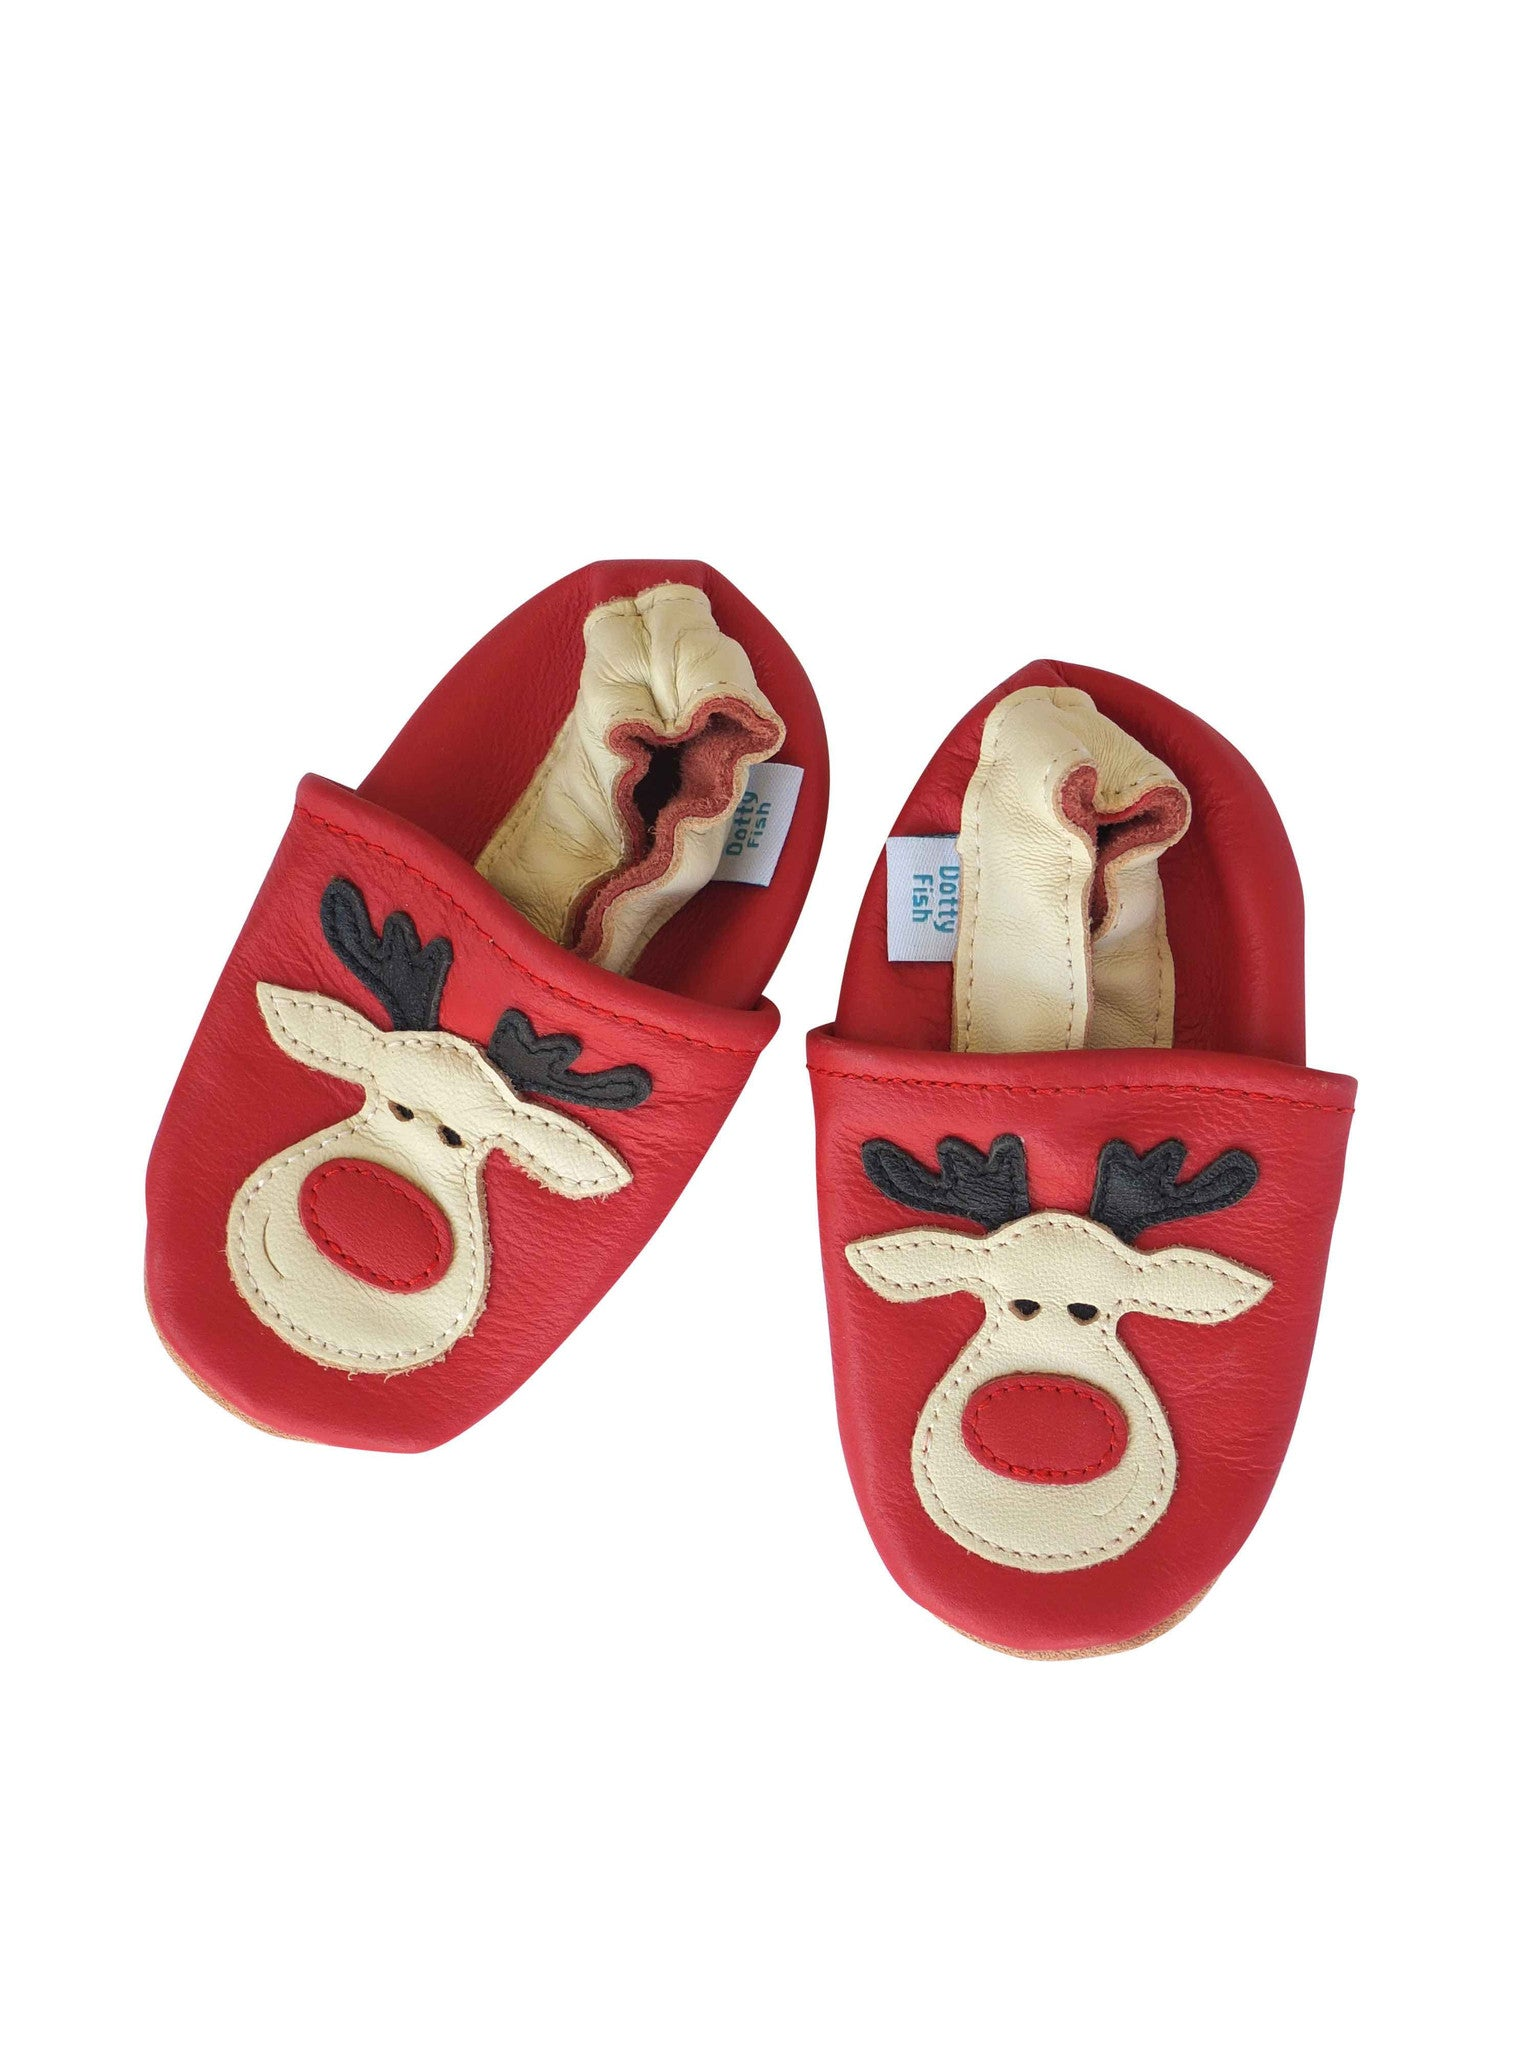 Unisex Soft Leather Elasticised Pram Shoes - Christmas Reindeer